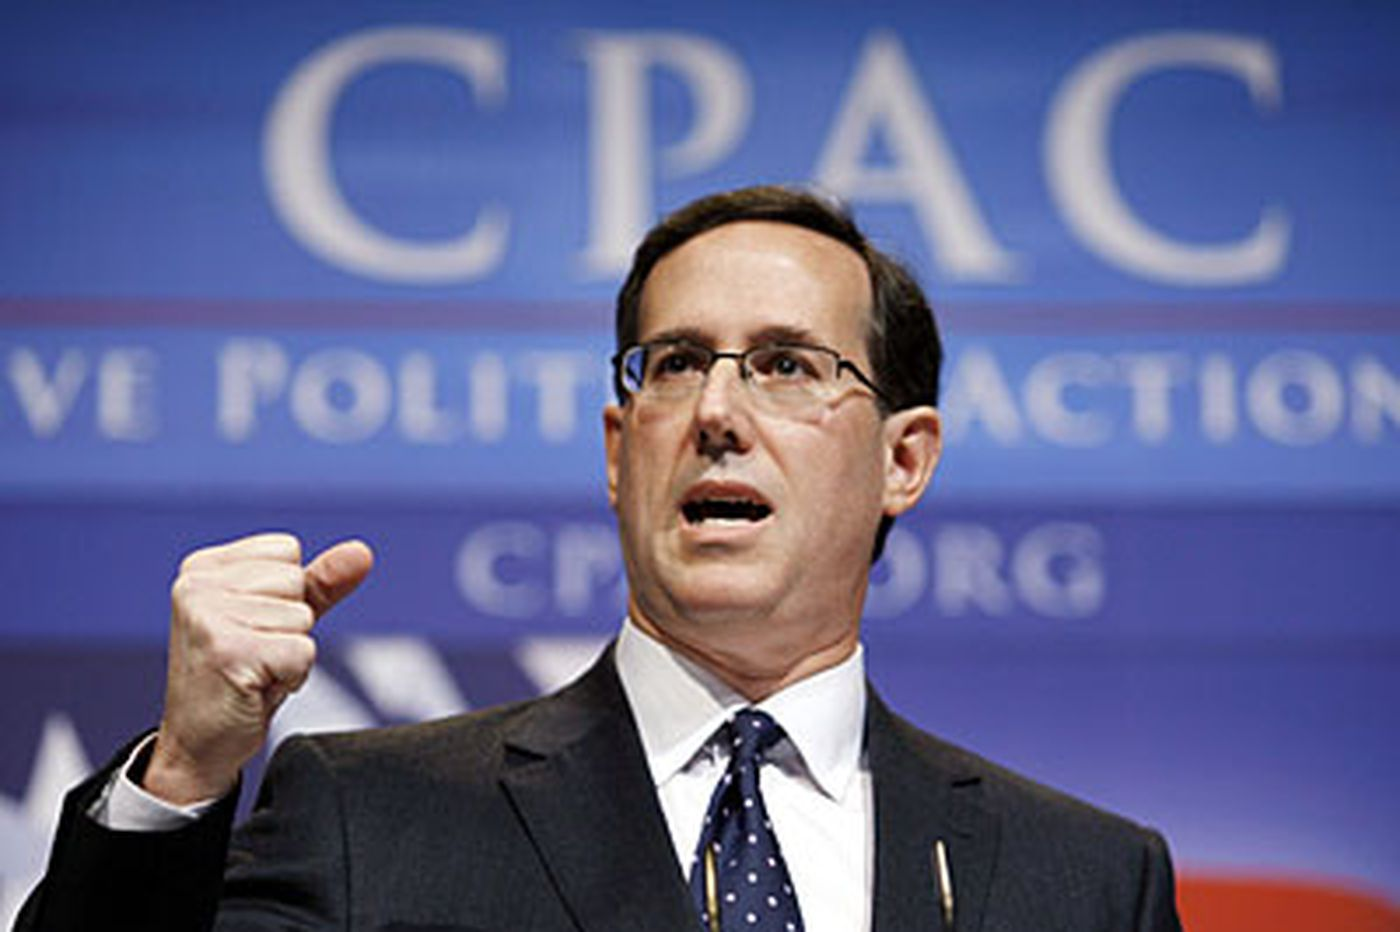 Santorum up to date on taxes; previous report incorrect